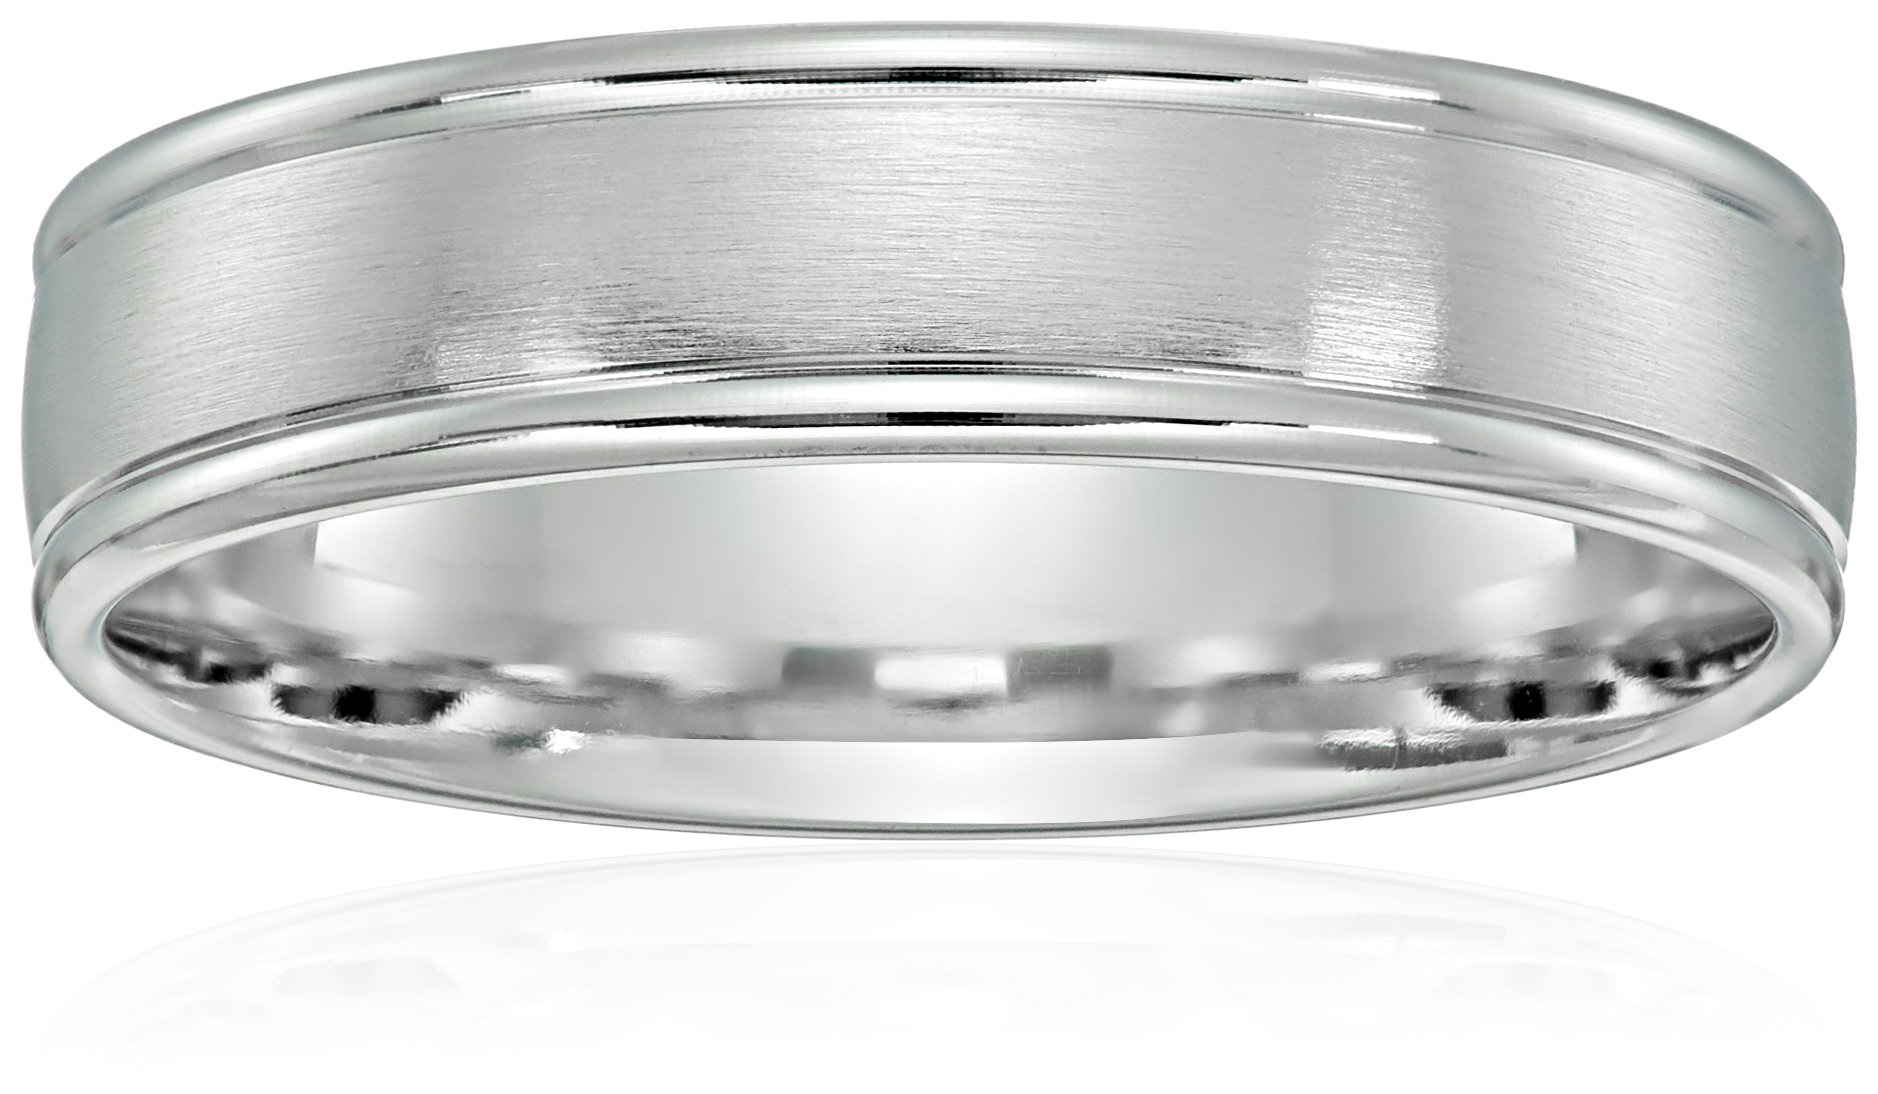 10k White Gold 6mm Comfort-Fit Wedding Band with Satin Center and High Polish Round Edges, Size 9